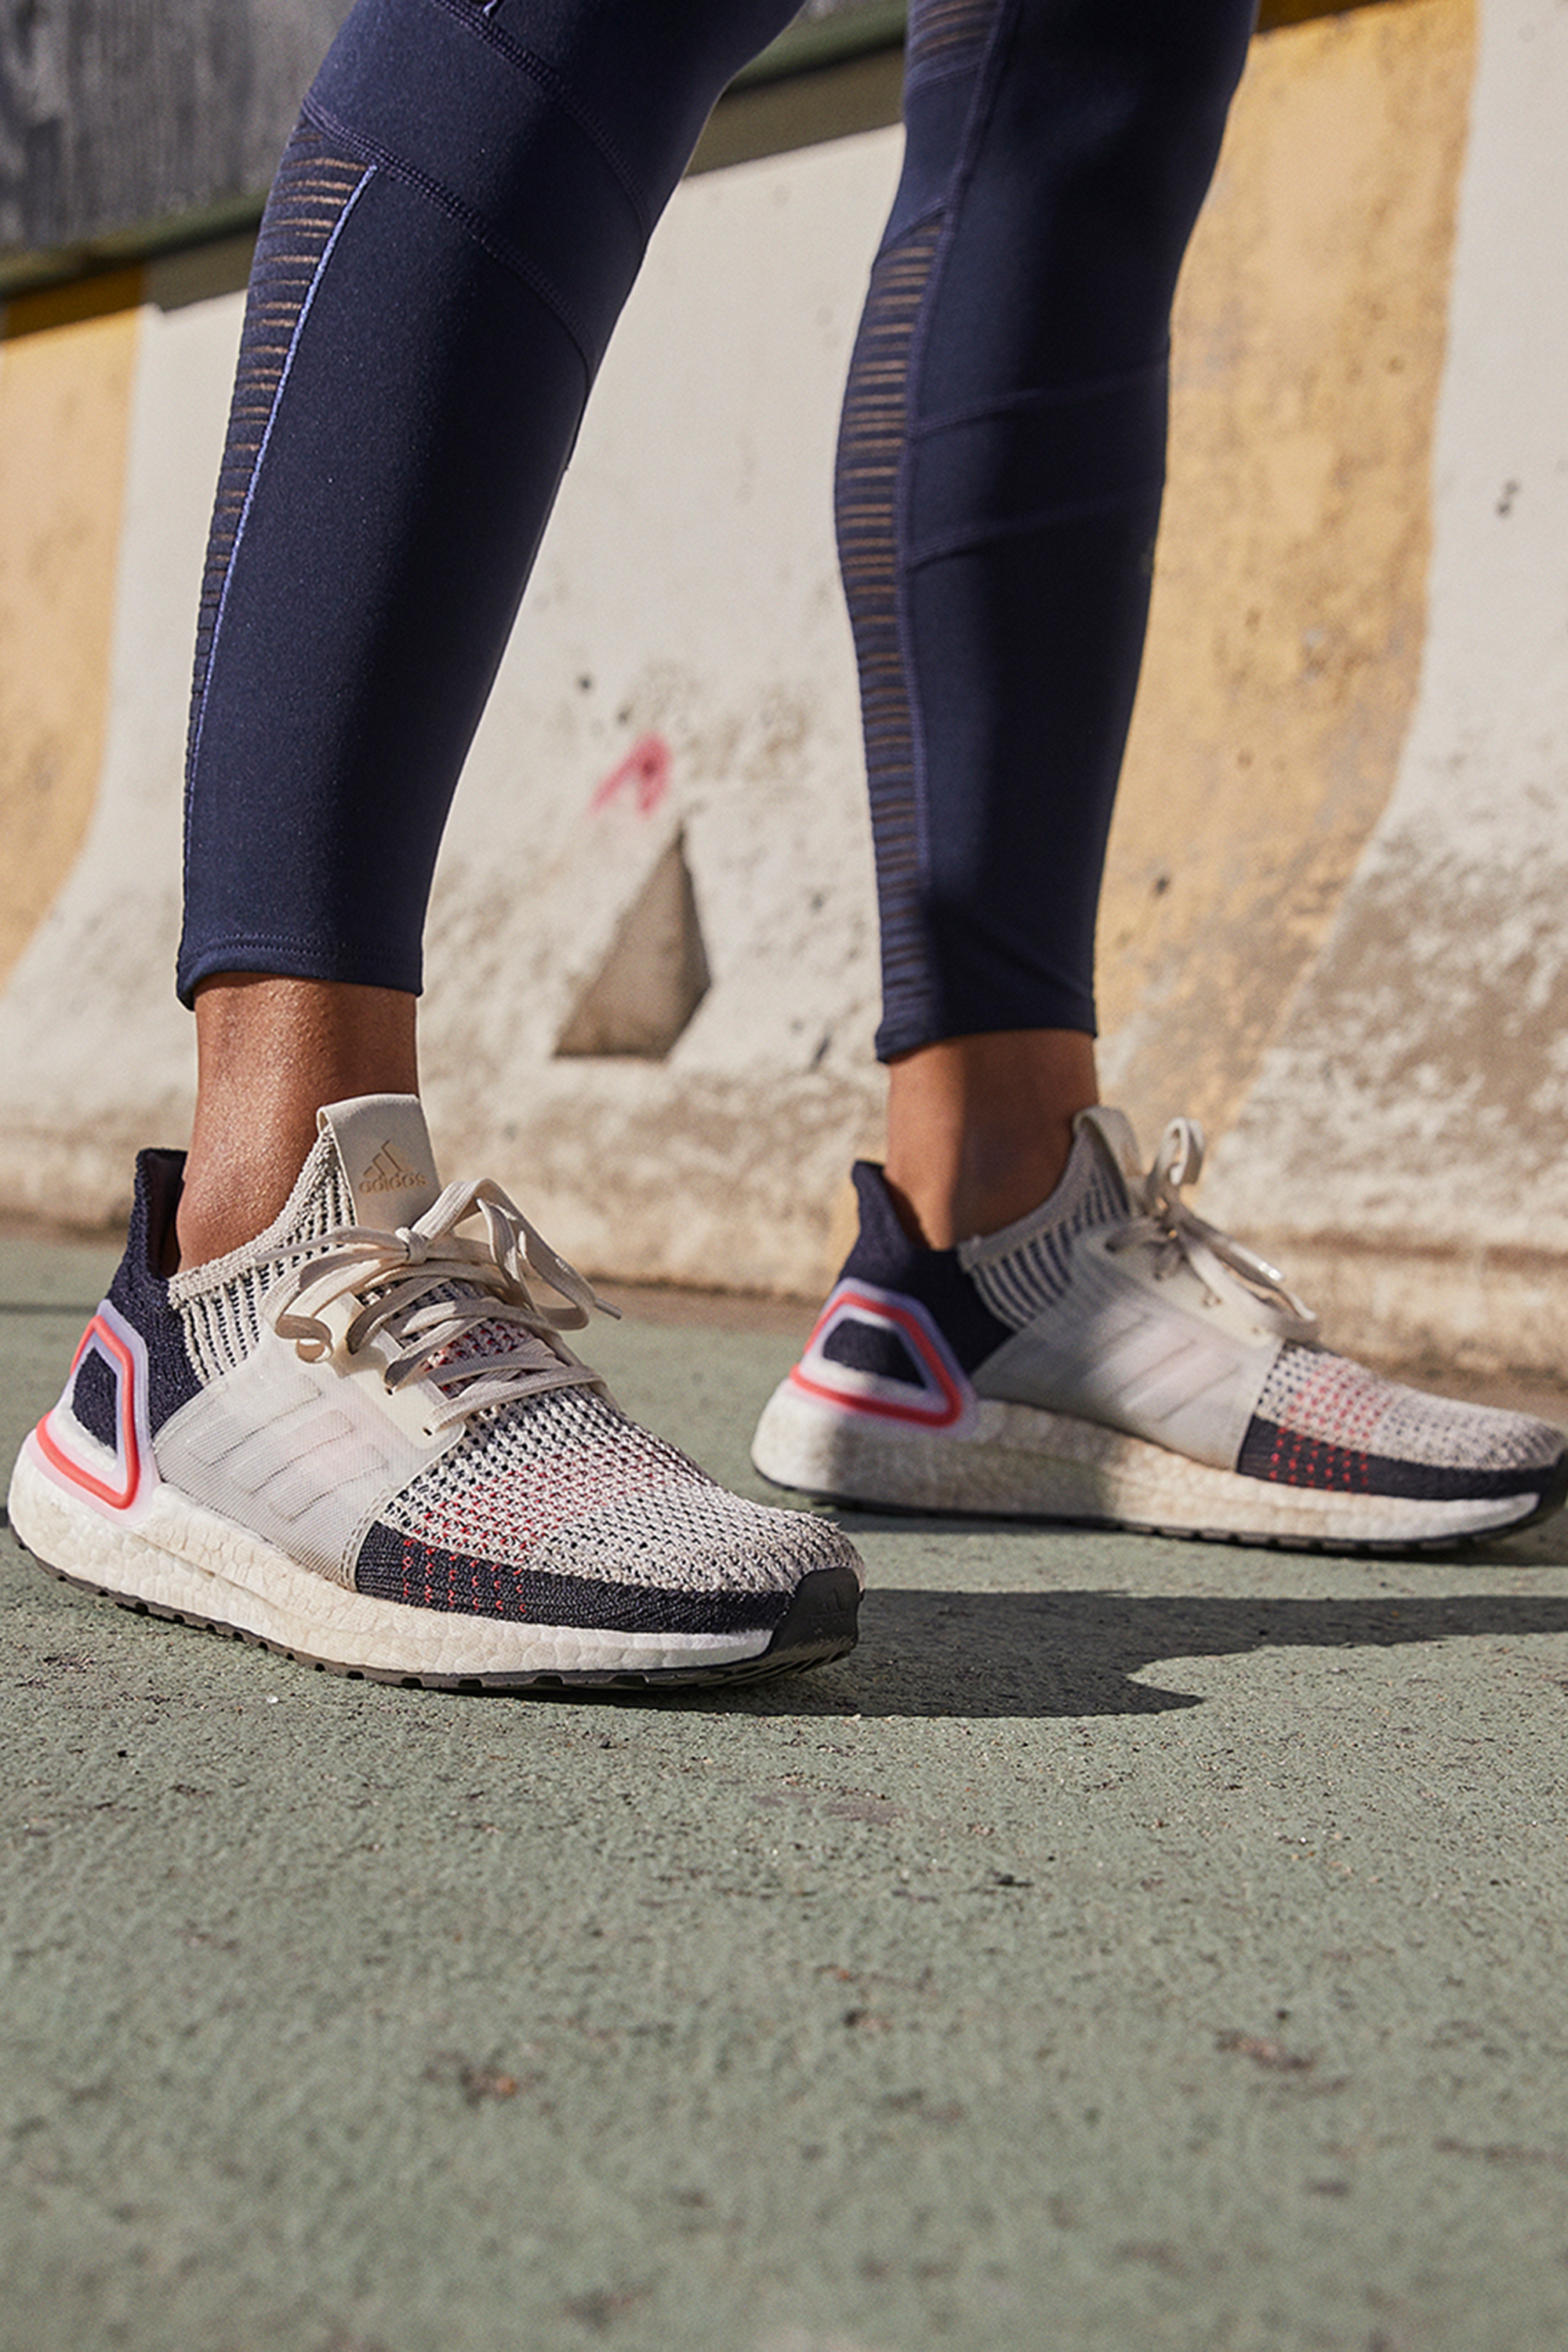 Reboosted and ready for blast off. The #ULTRABOOST 19